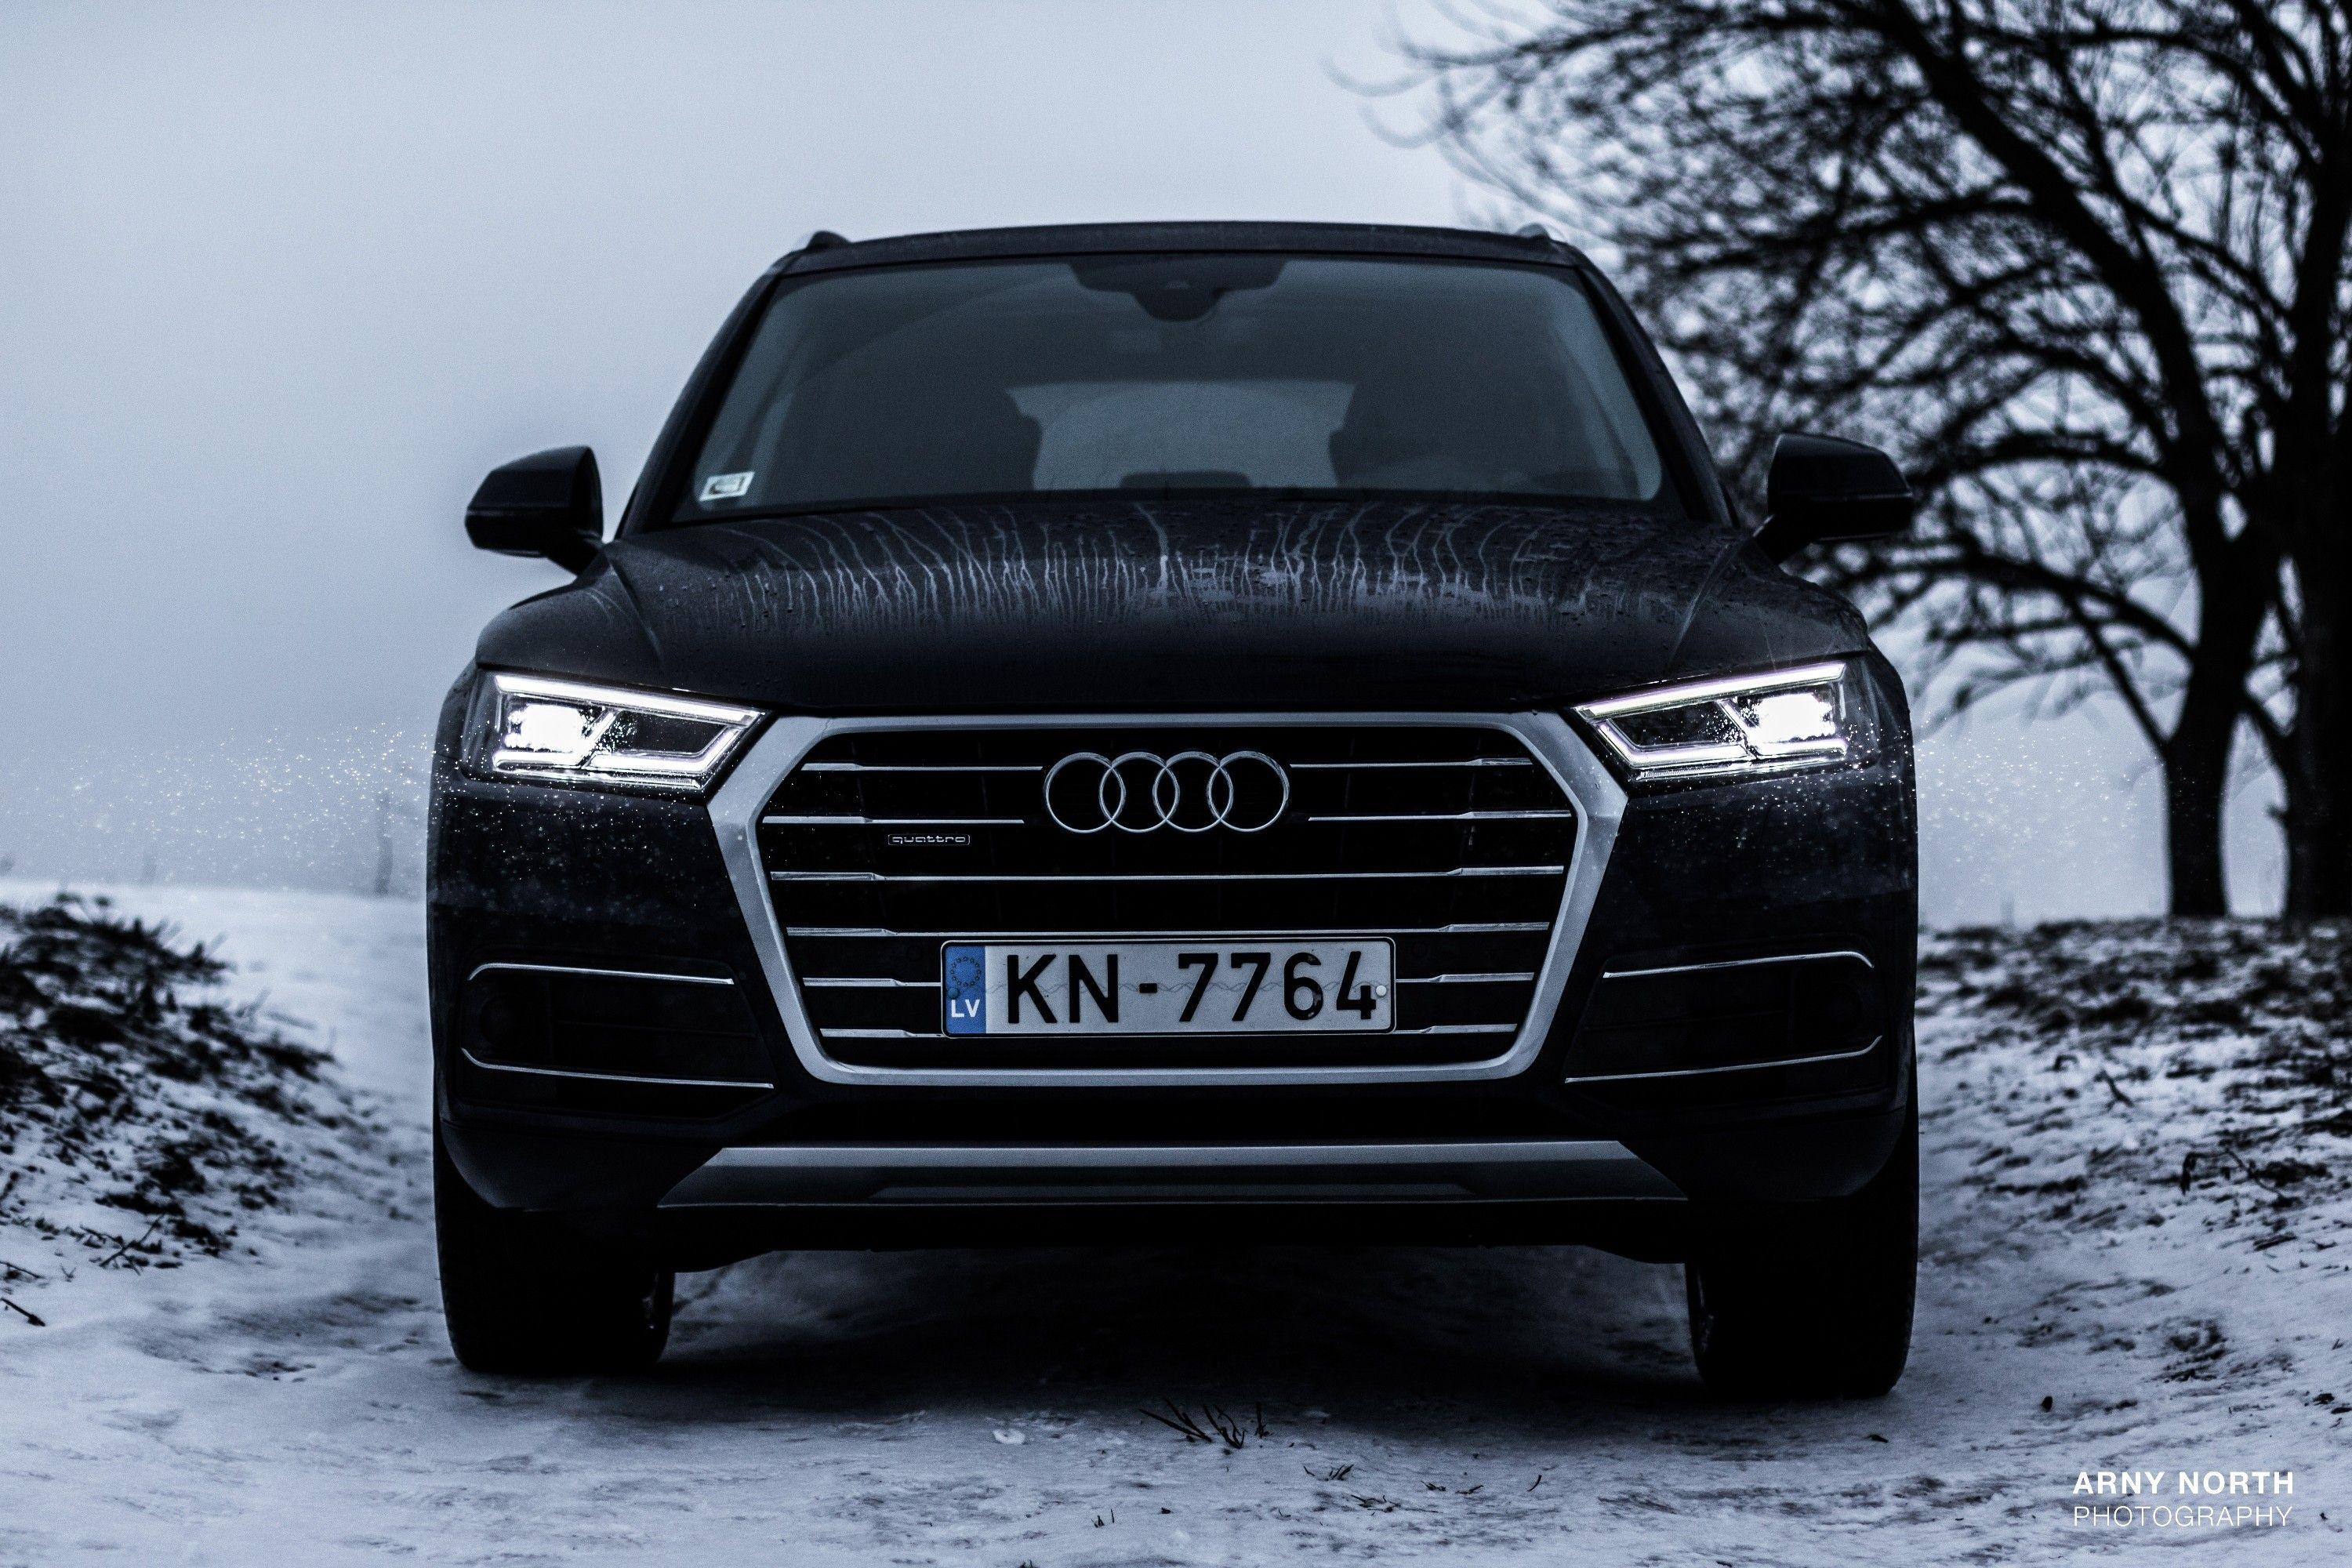 audi q5 audi quattro snow latvia arny north wallpaper and background